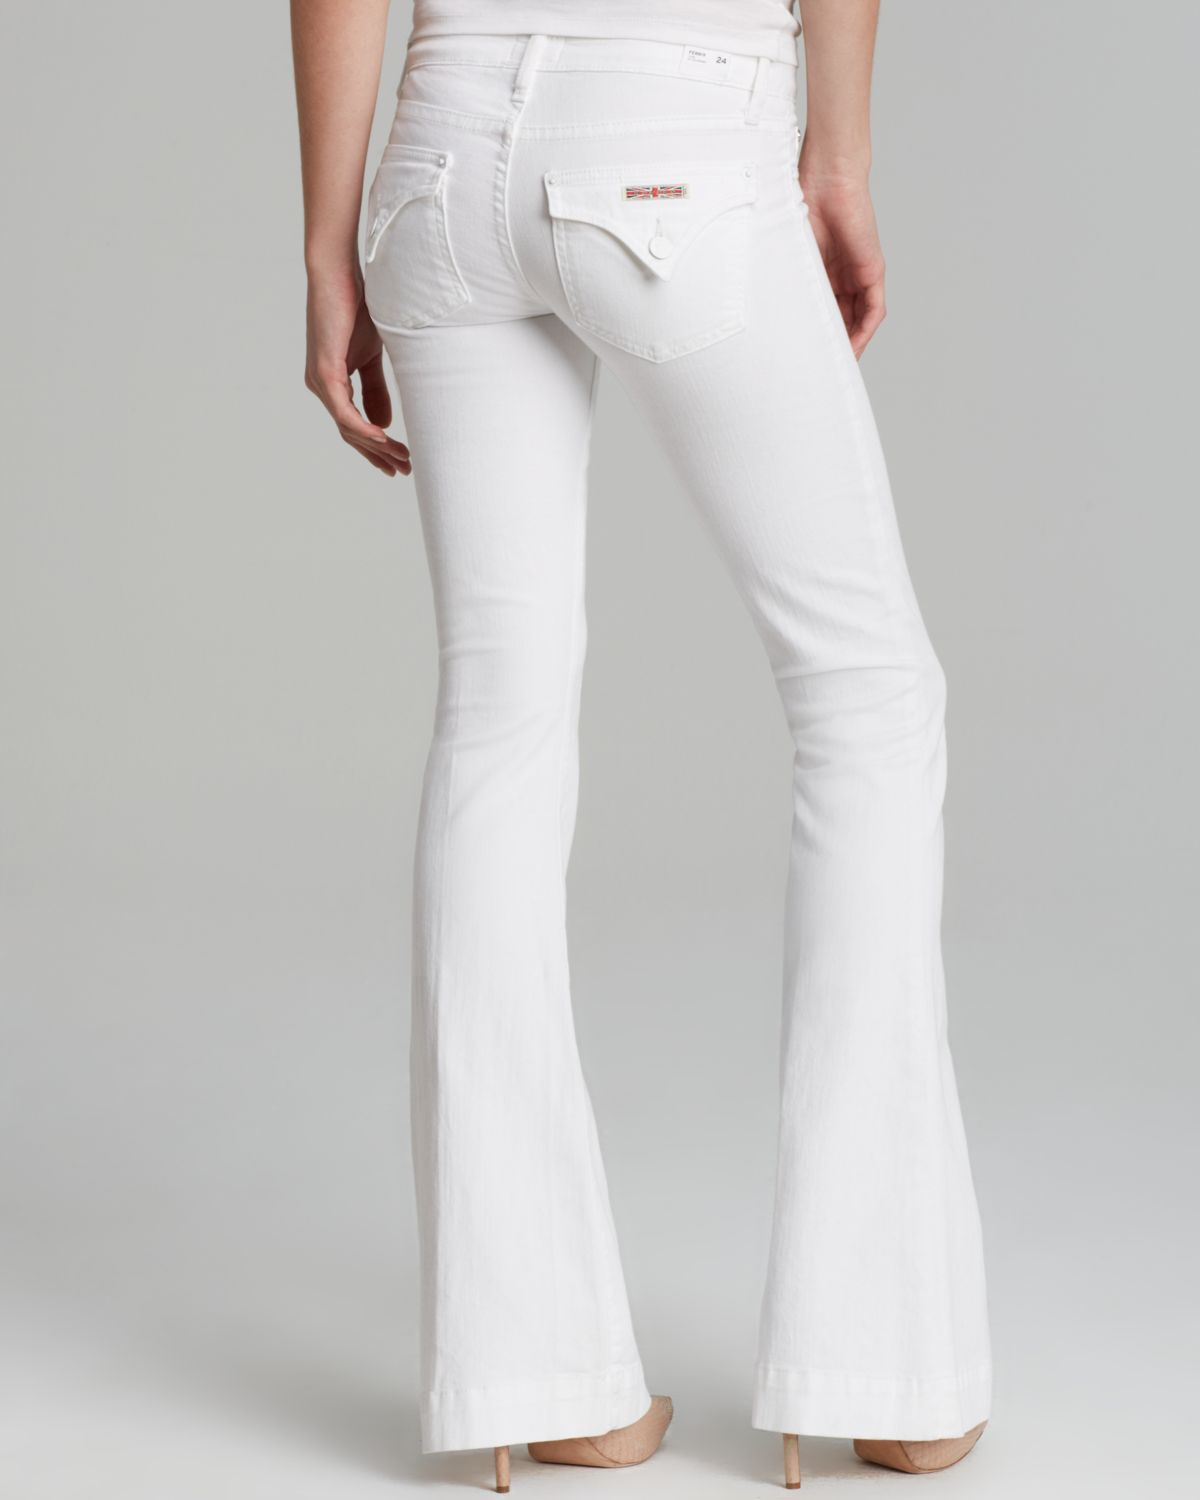 Hudson jeans Jeans Ferris Flare in White in White | Lyst